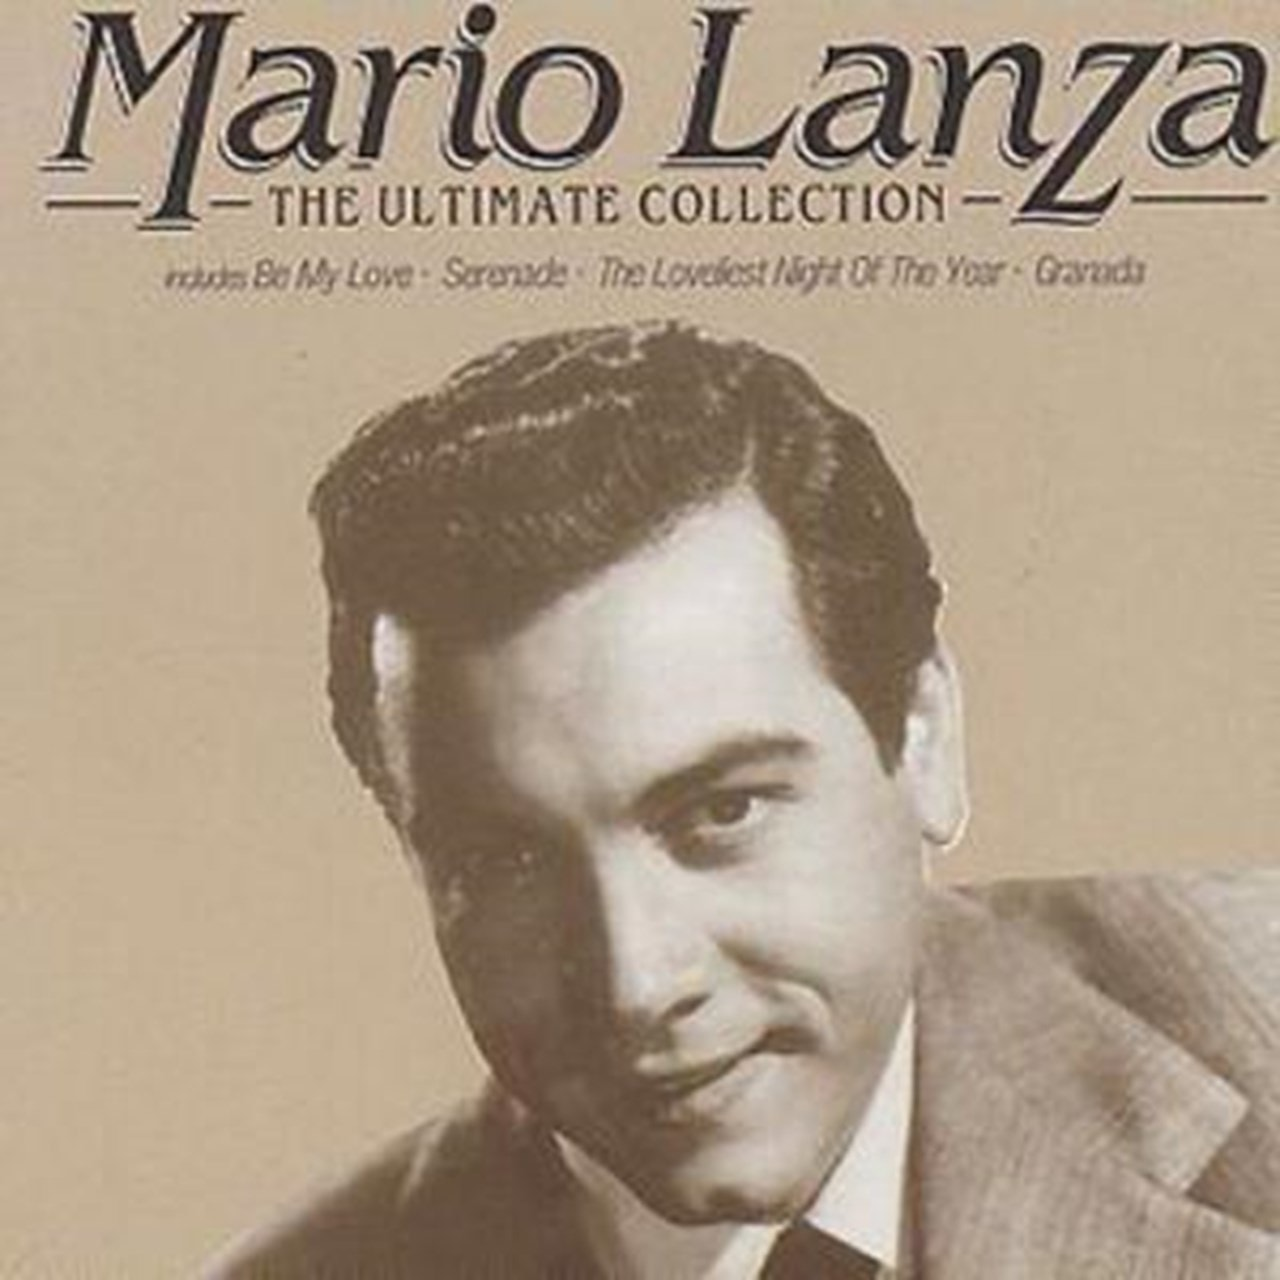 Mario Lanza: The Ultimate Collection - 1